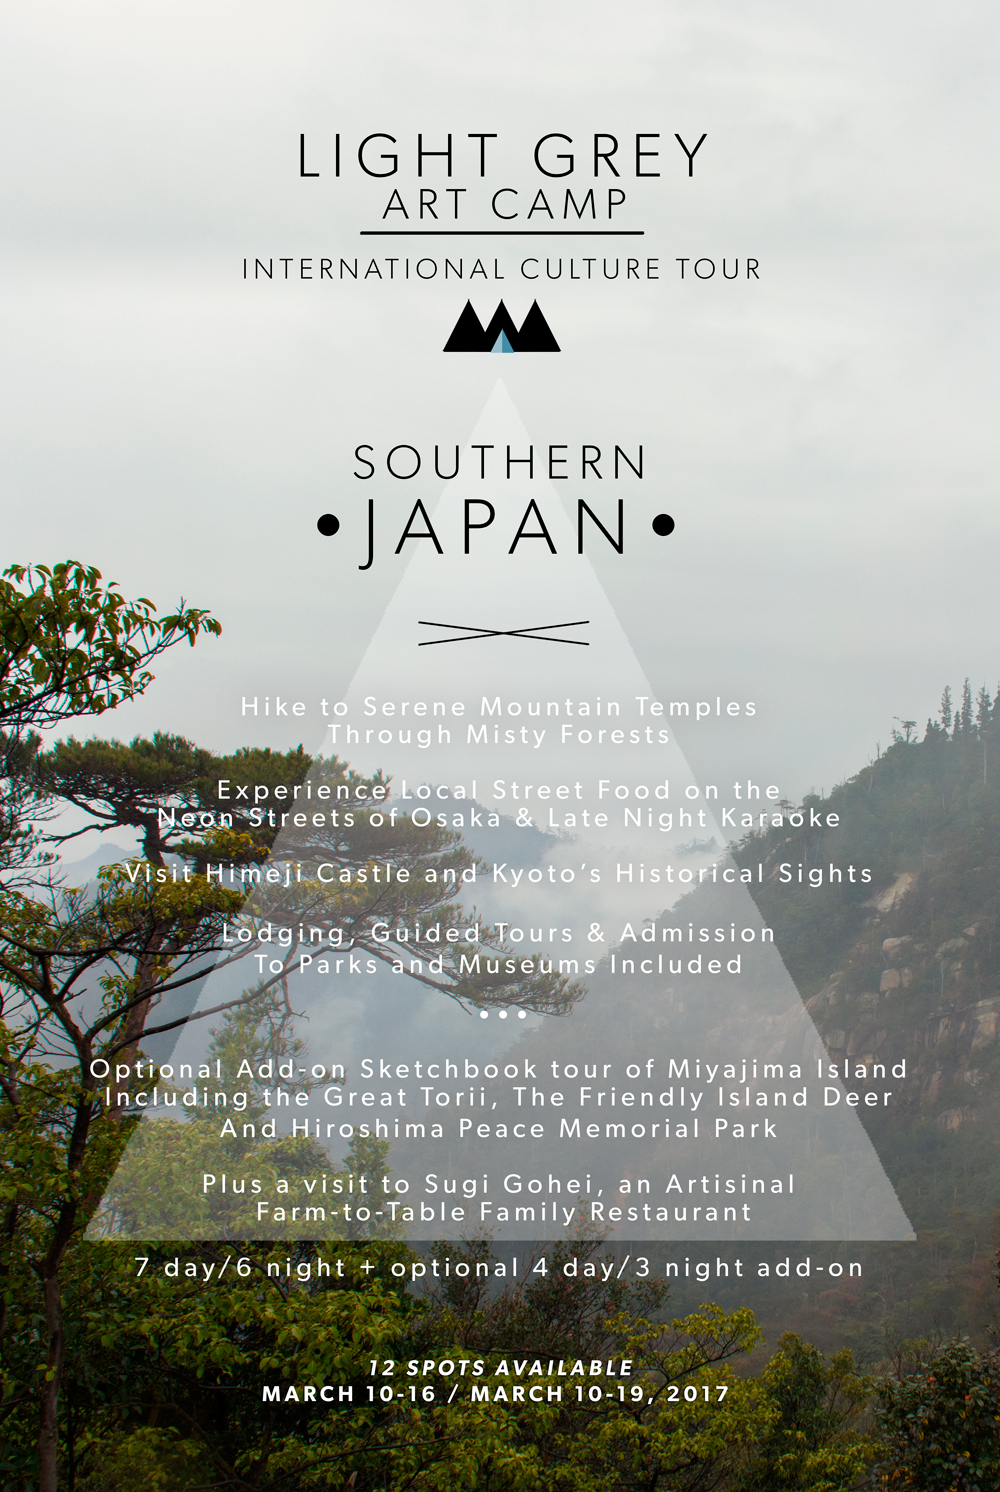 SouthernJapan_travel_triangle.jpg